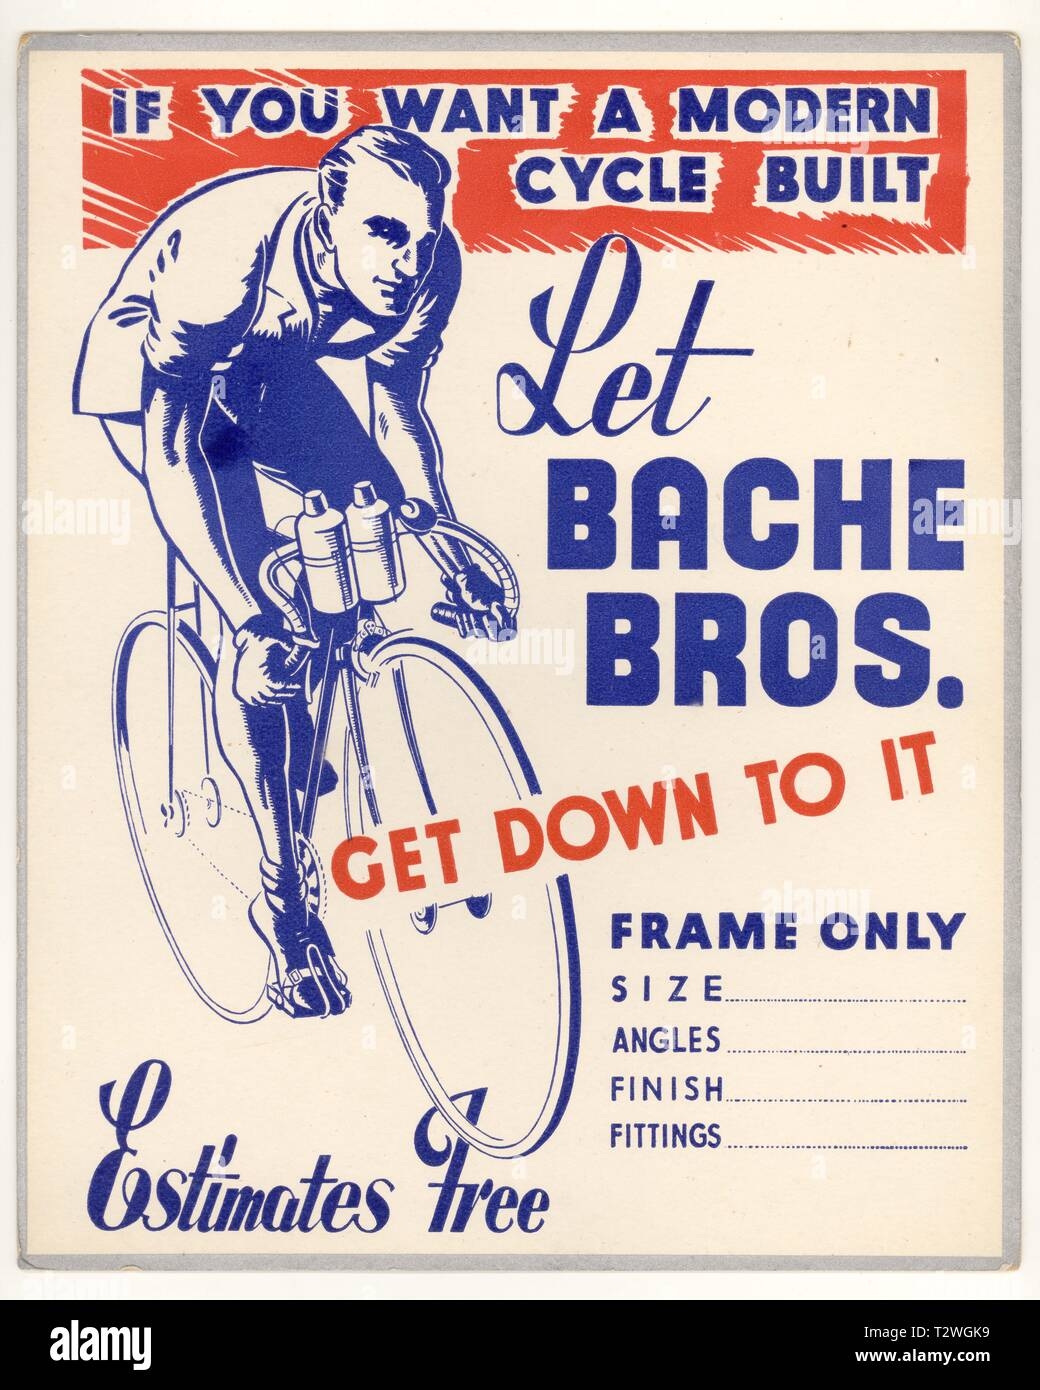 1950's Bache Bros. of Stourbridge, Bicycle Counter top notice or display board, modern cycles built, W. Midlands, U.K. - Stock Image